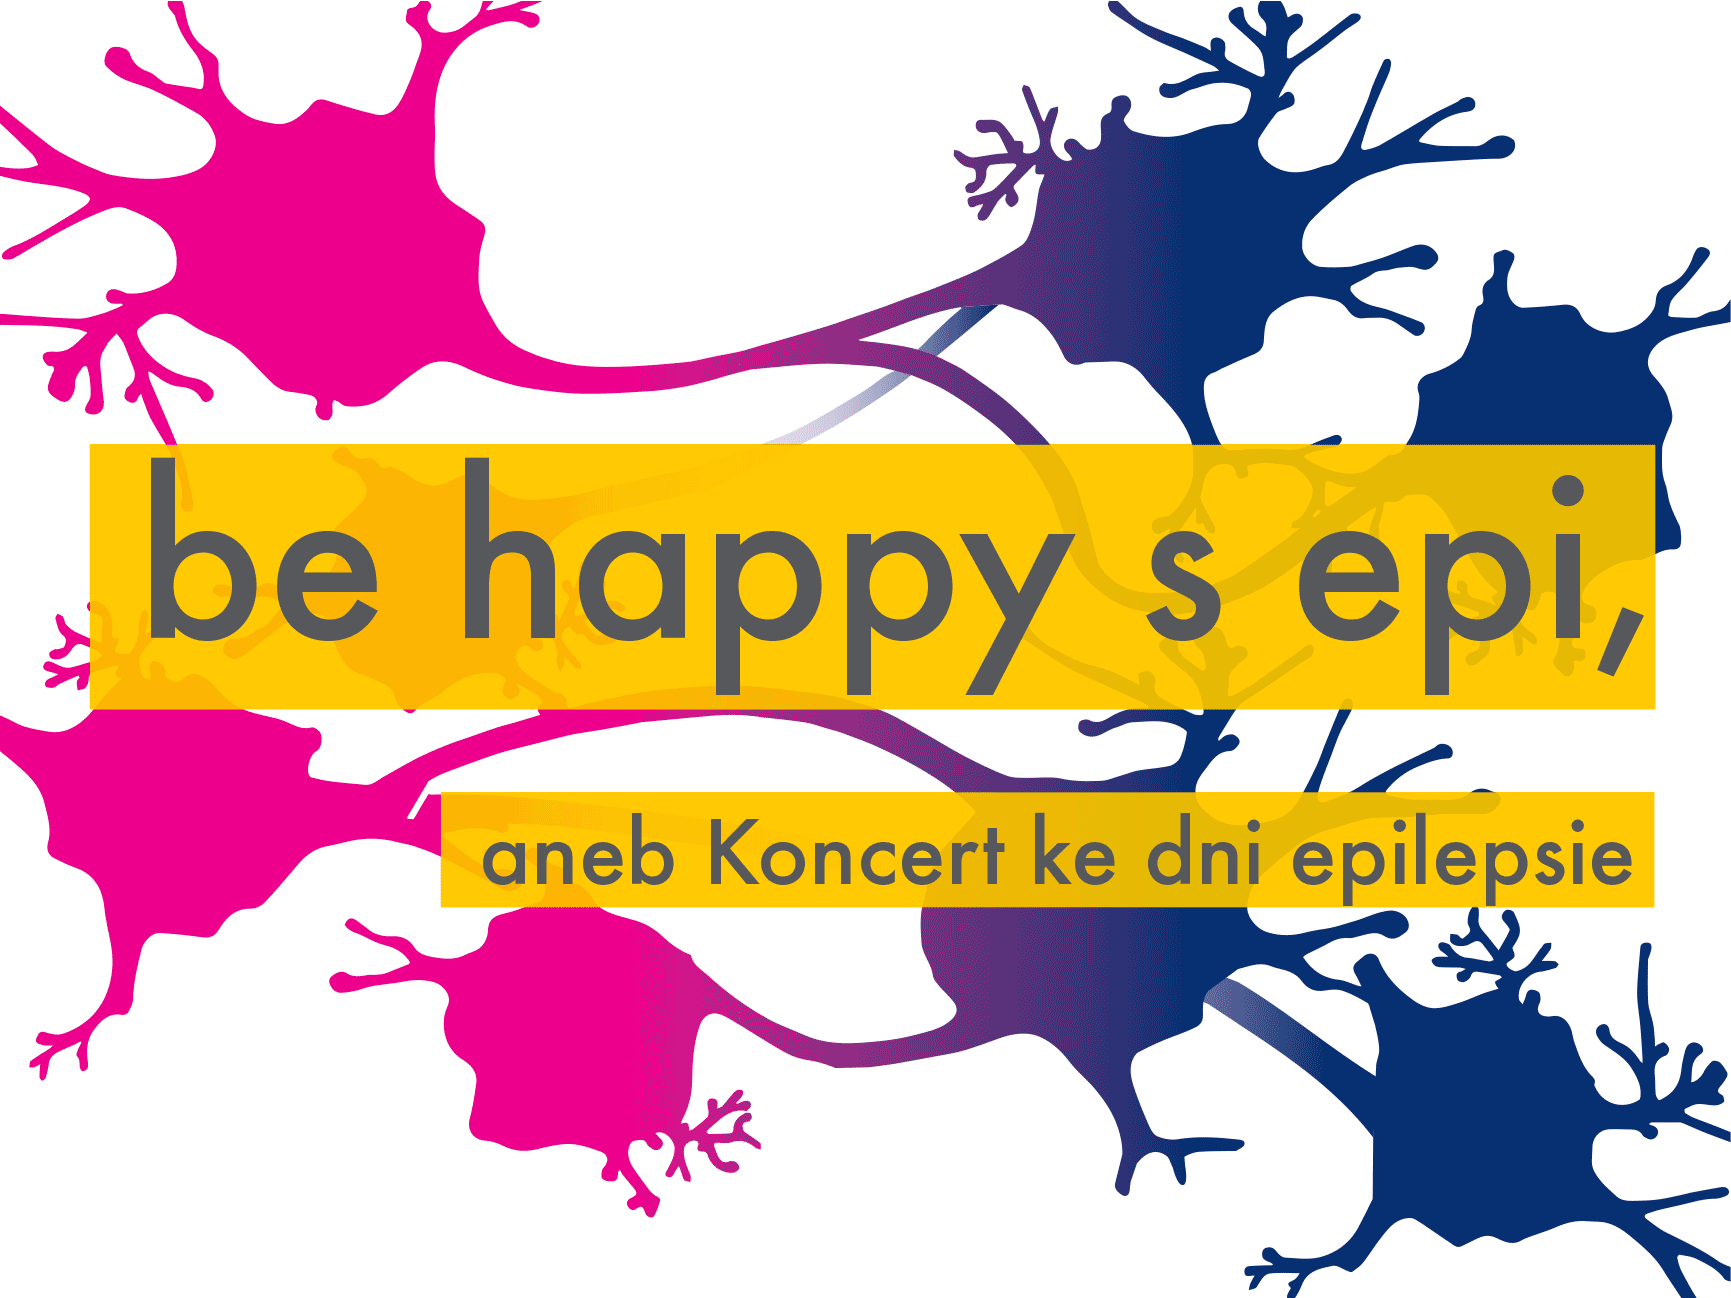 be happy s epi web